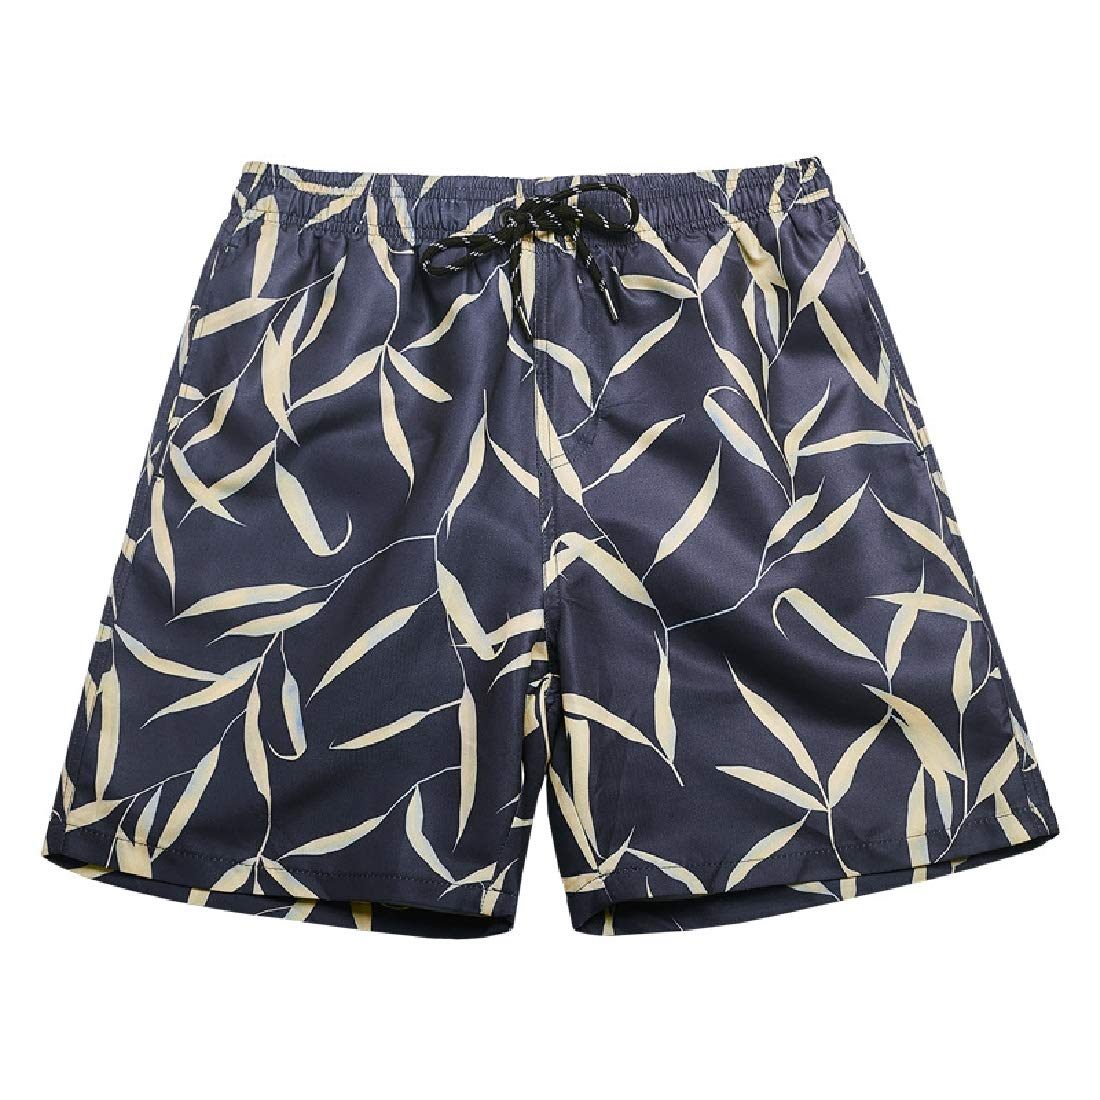 Zimaes-Men Quick Dry Plus Size Floral Printed Shorts Lounge Beach Trousers